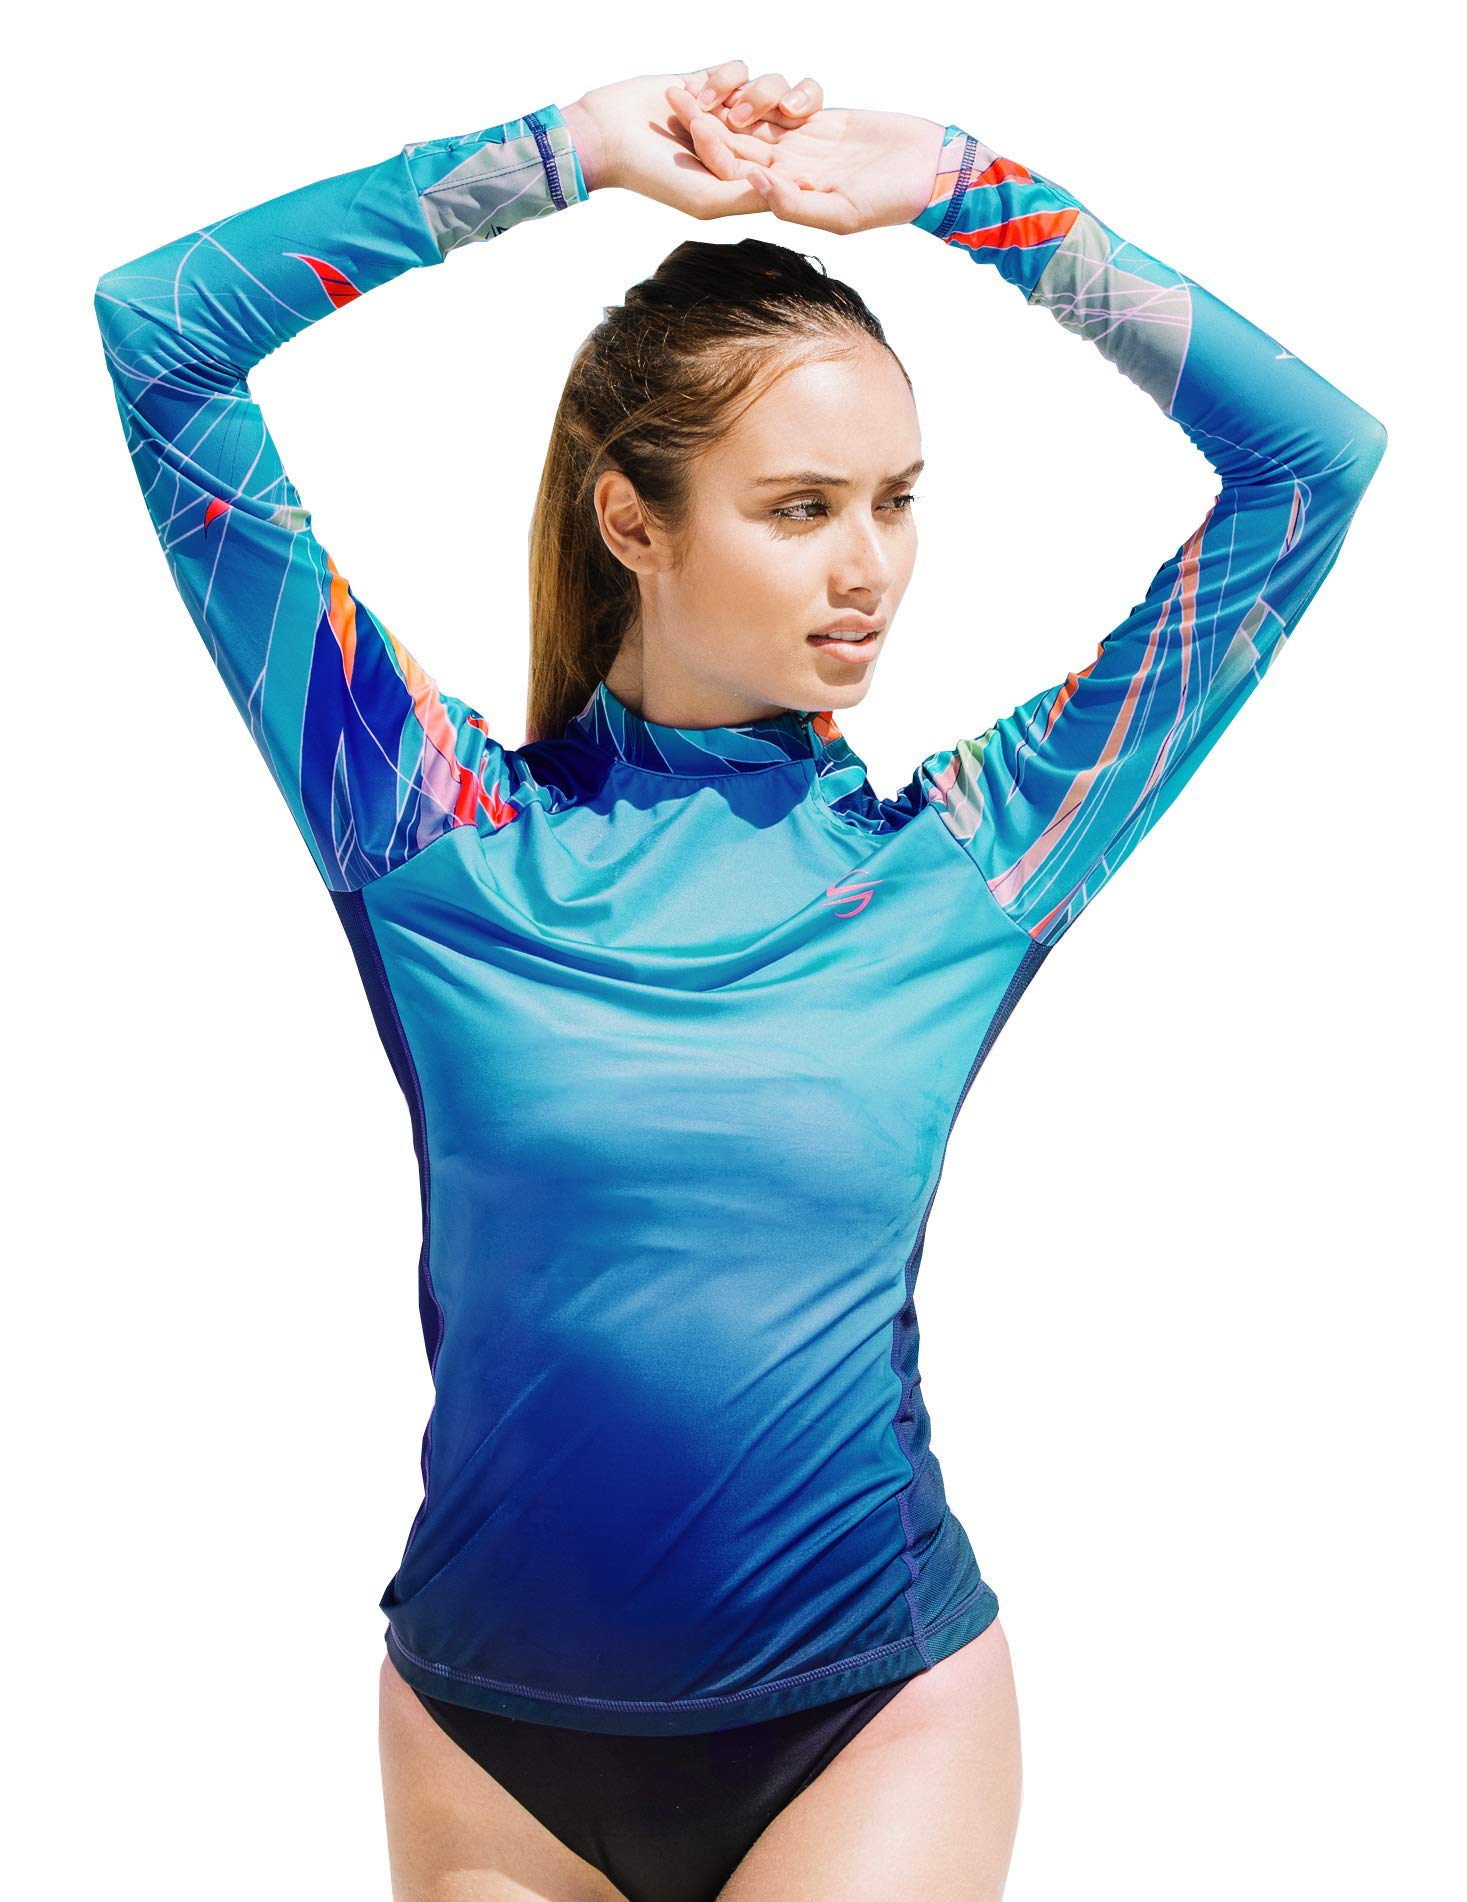 Women's Rash Guard Swim Shirt Long Sleeve Swimsuit Top Bathing Swimming Shirts - Sun Protection Clothing UPF 30+ (Marina, L) by Platinum Sun